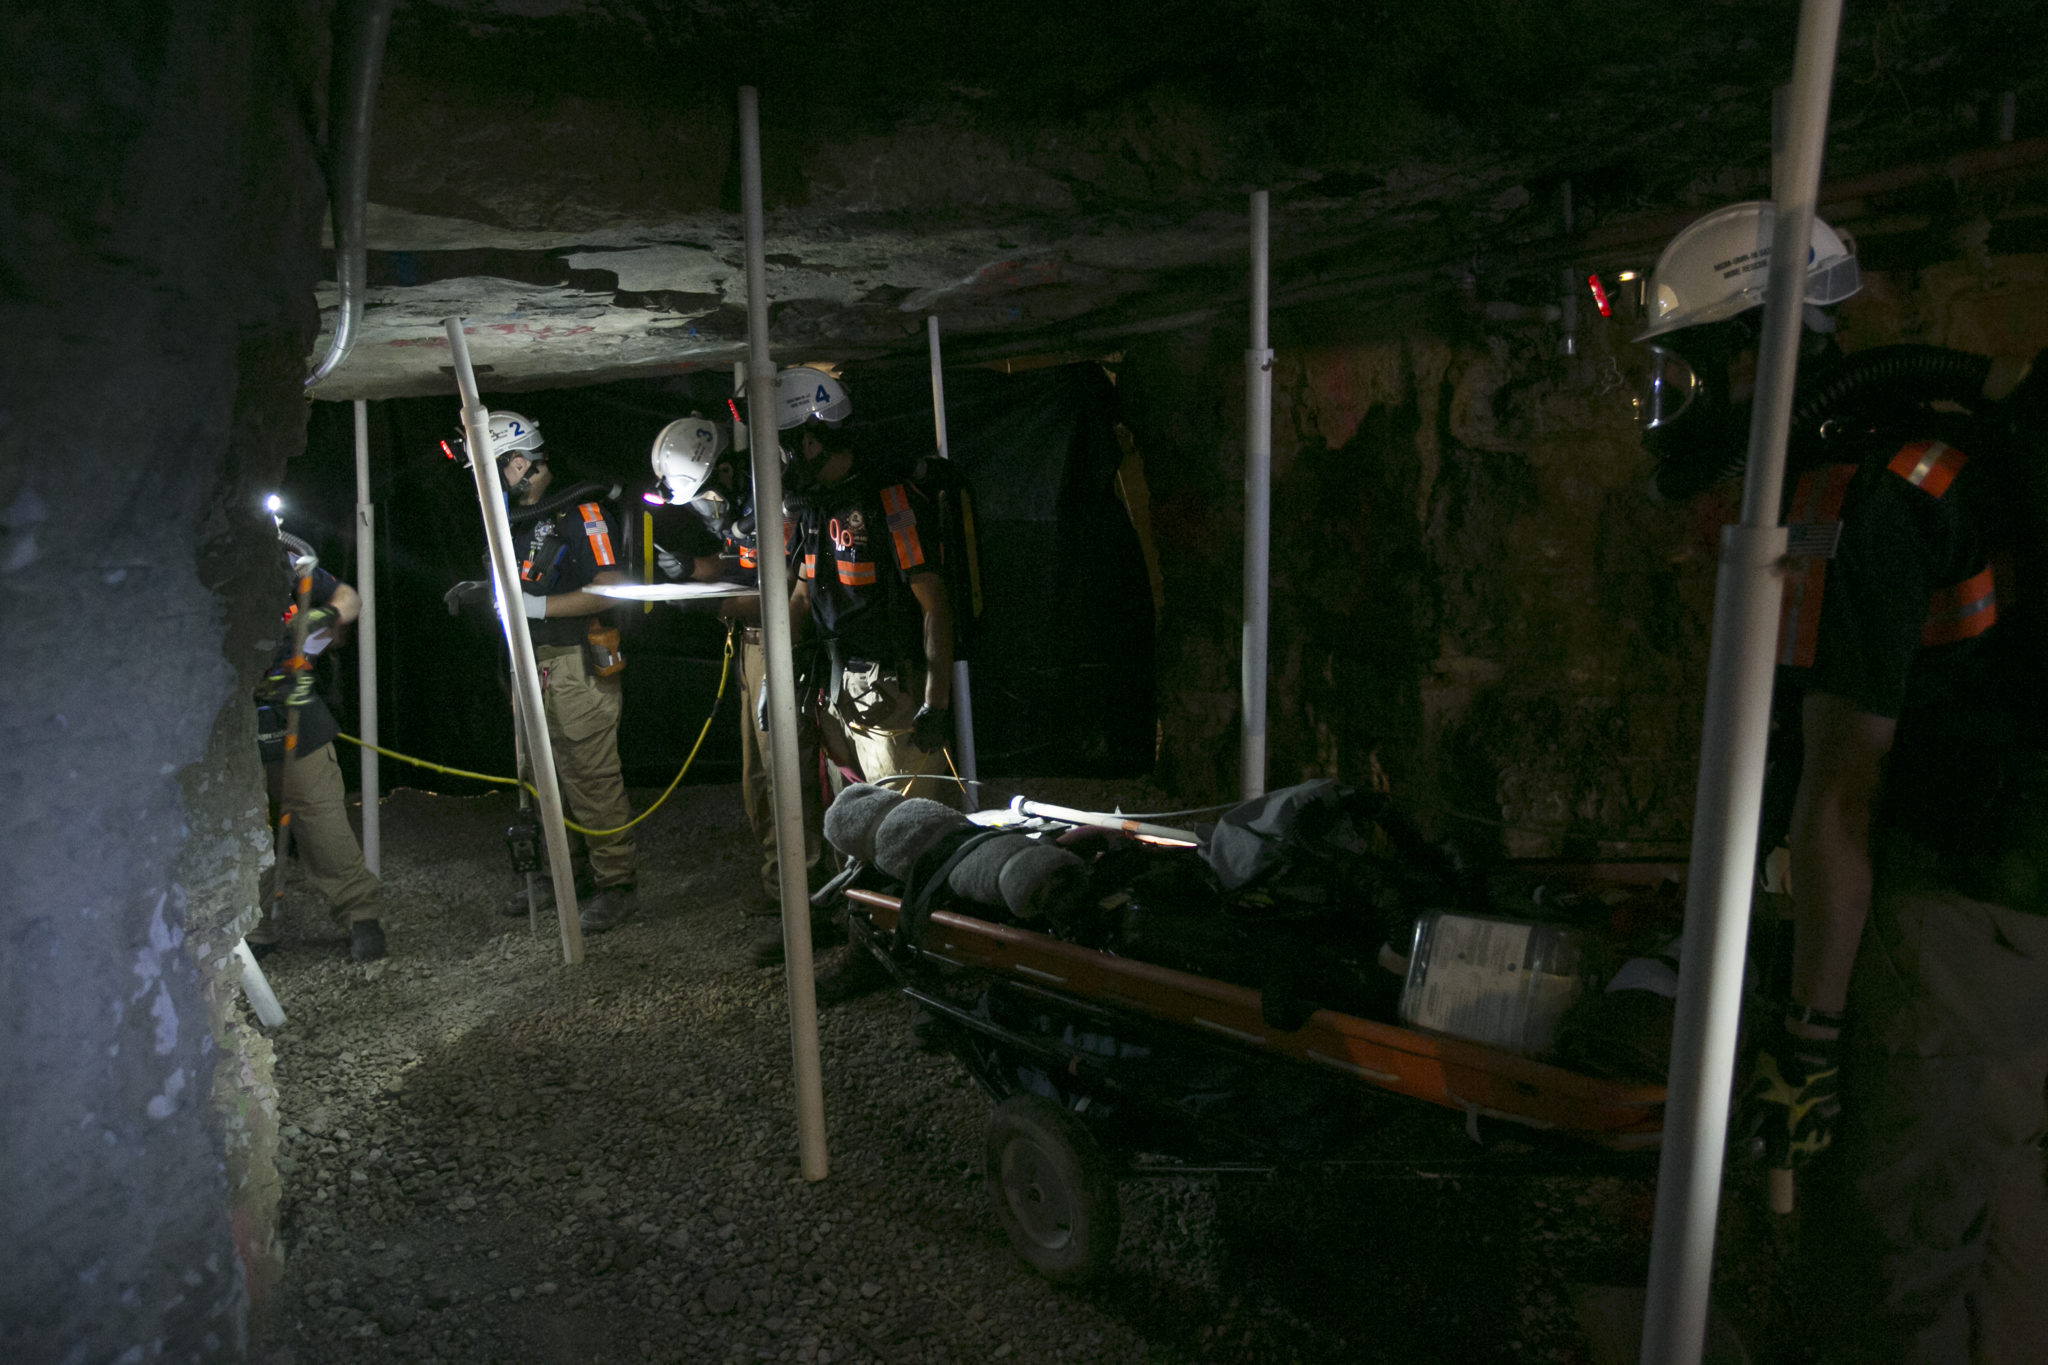 Missouri S&T's two mine rescue teams will compete against industry teams at the 34th Annual Mine Rescue Competition Oct. 3-6 at S&T's Experimental Mine. Sam O'Keefe/Missouri S&T